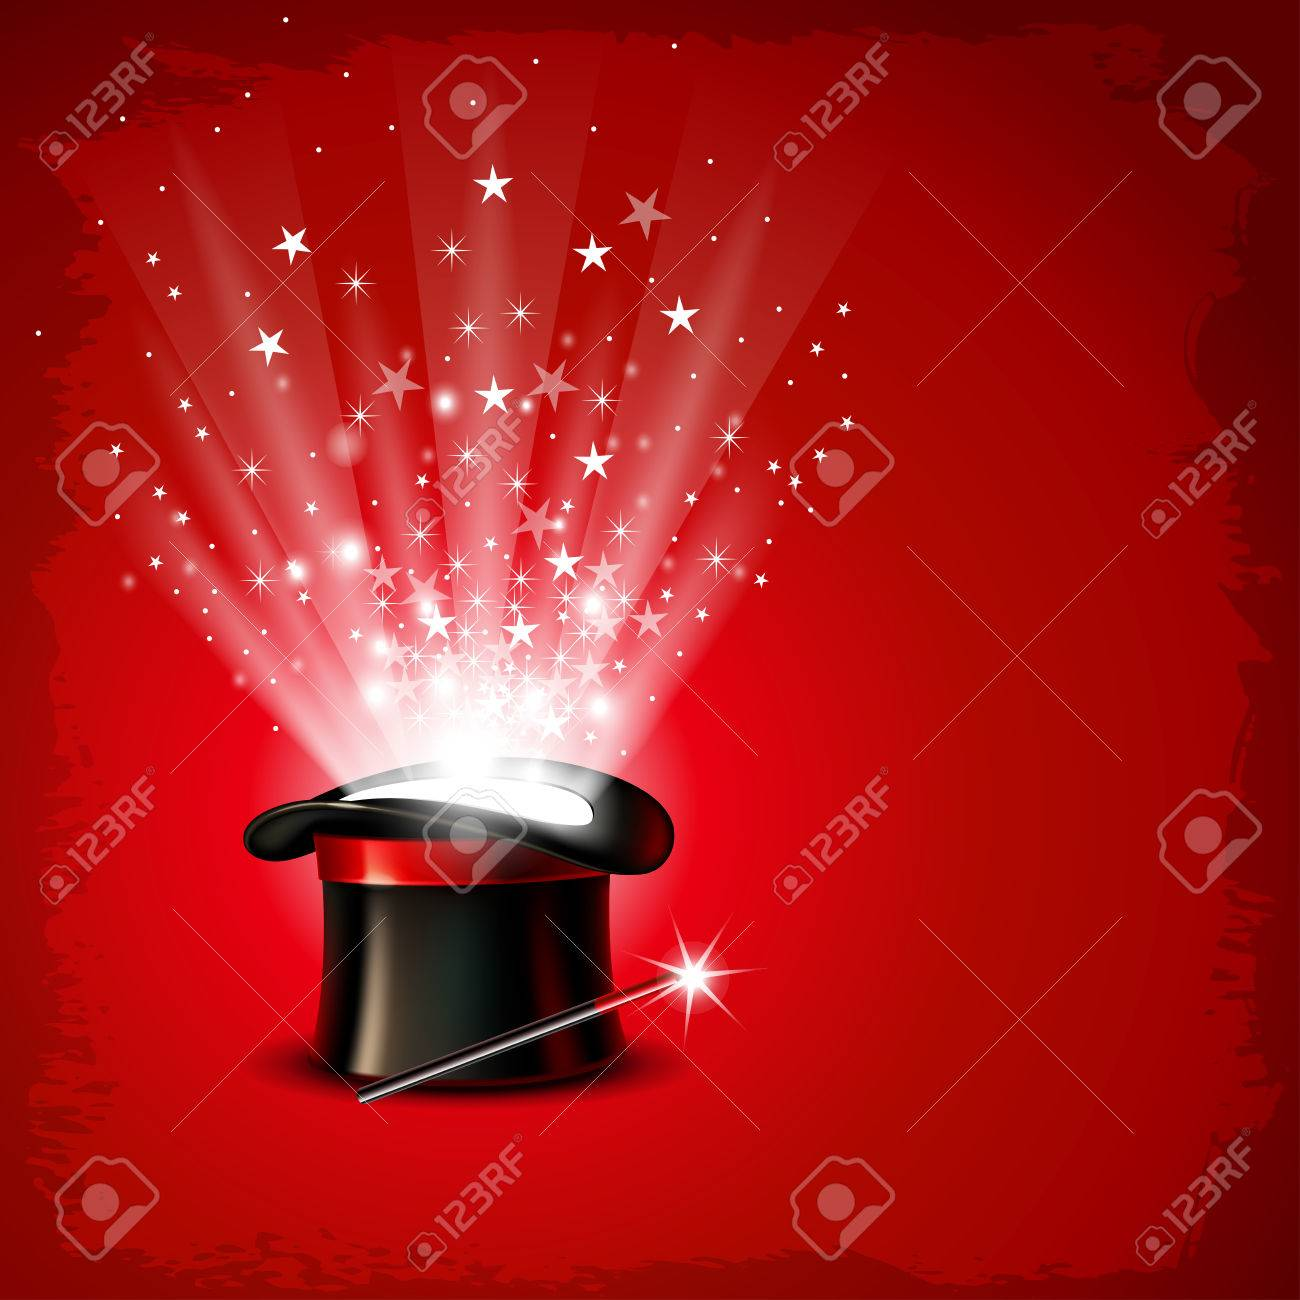 Vintage background with magician hat, wand and magical glow - 55910432